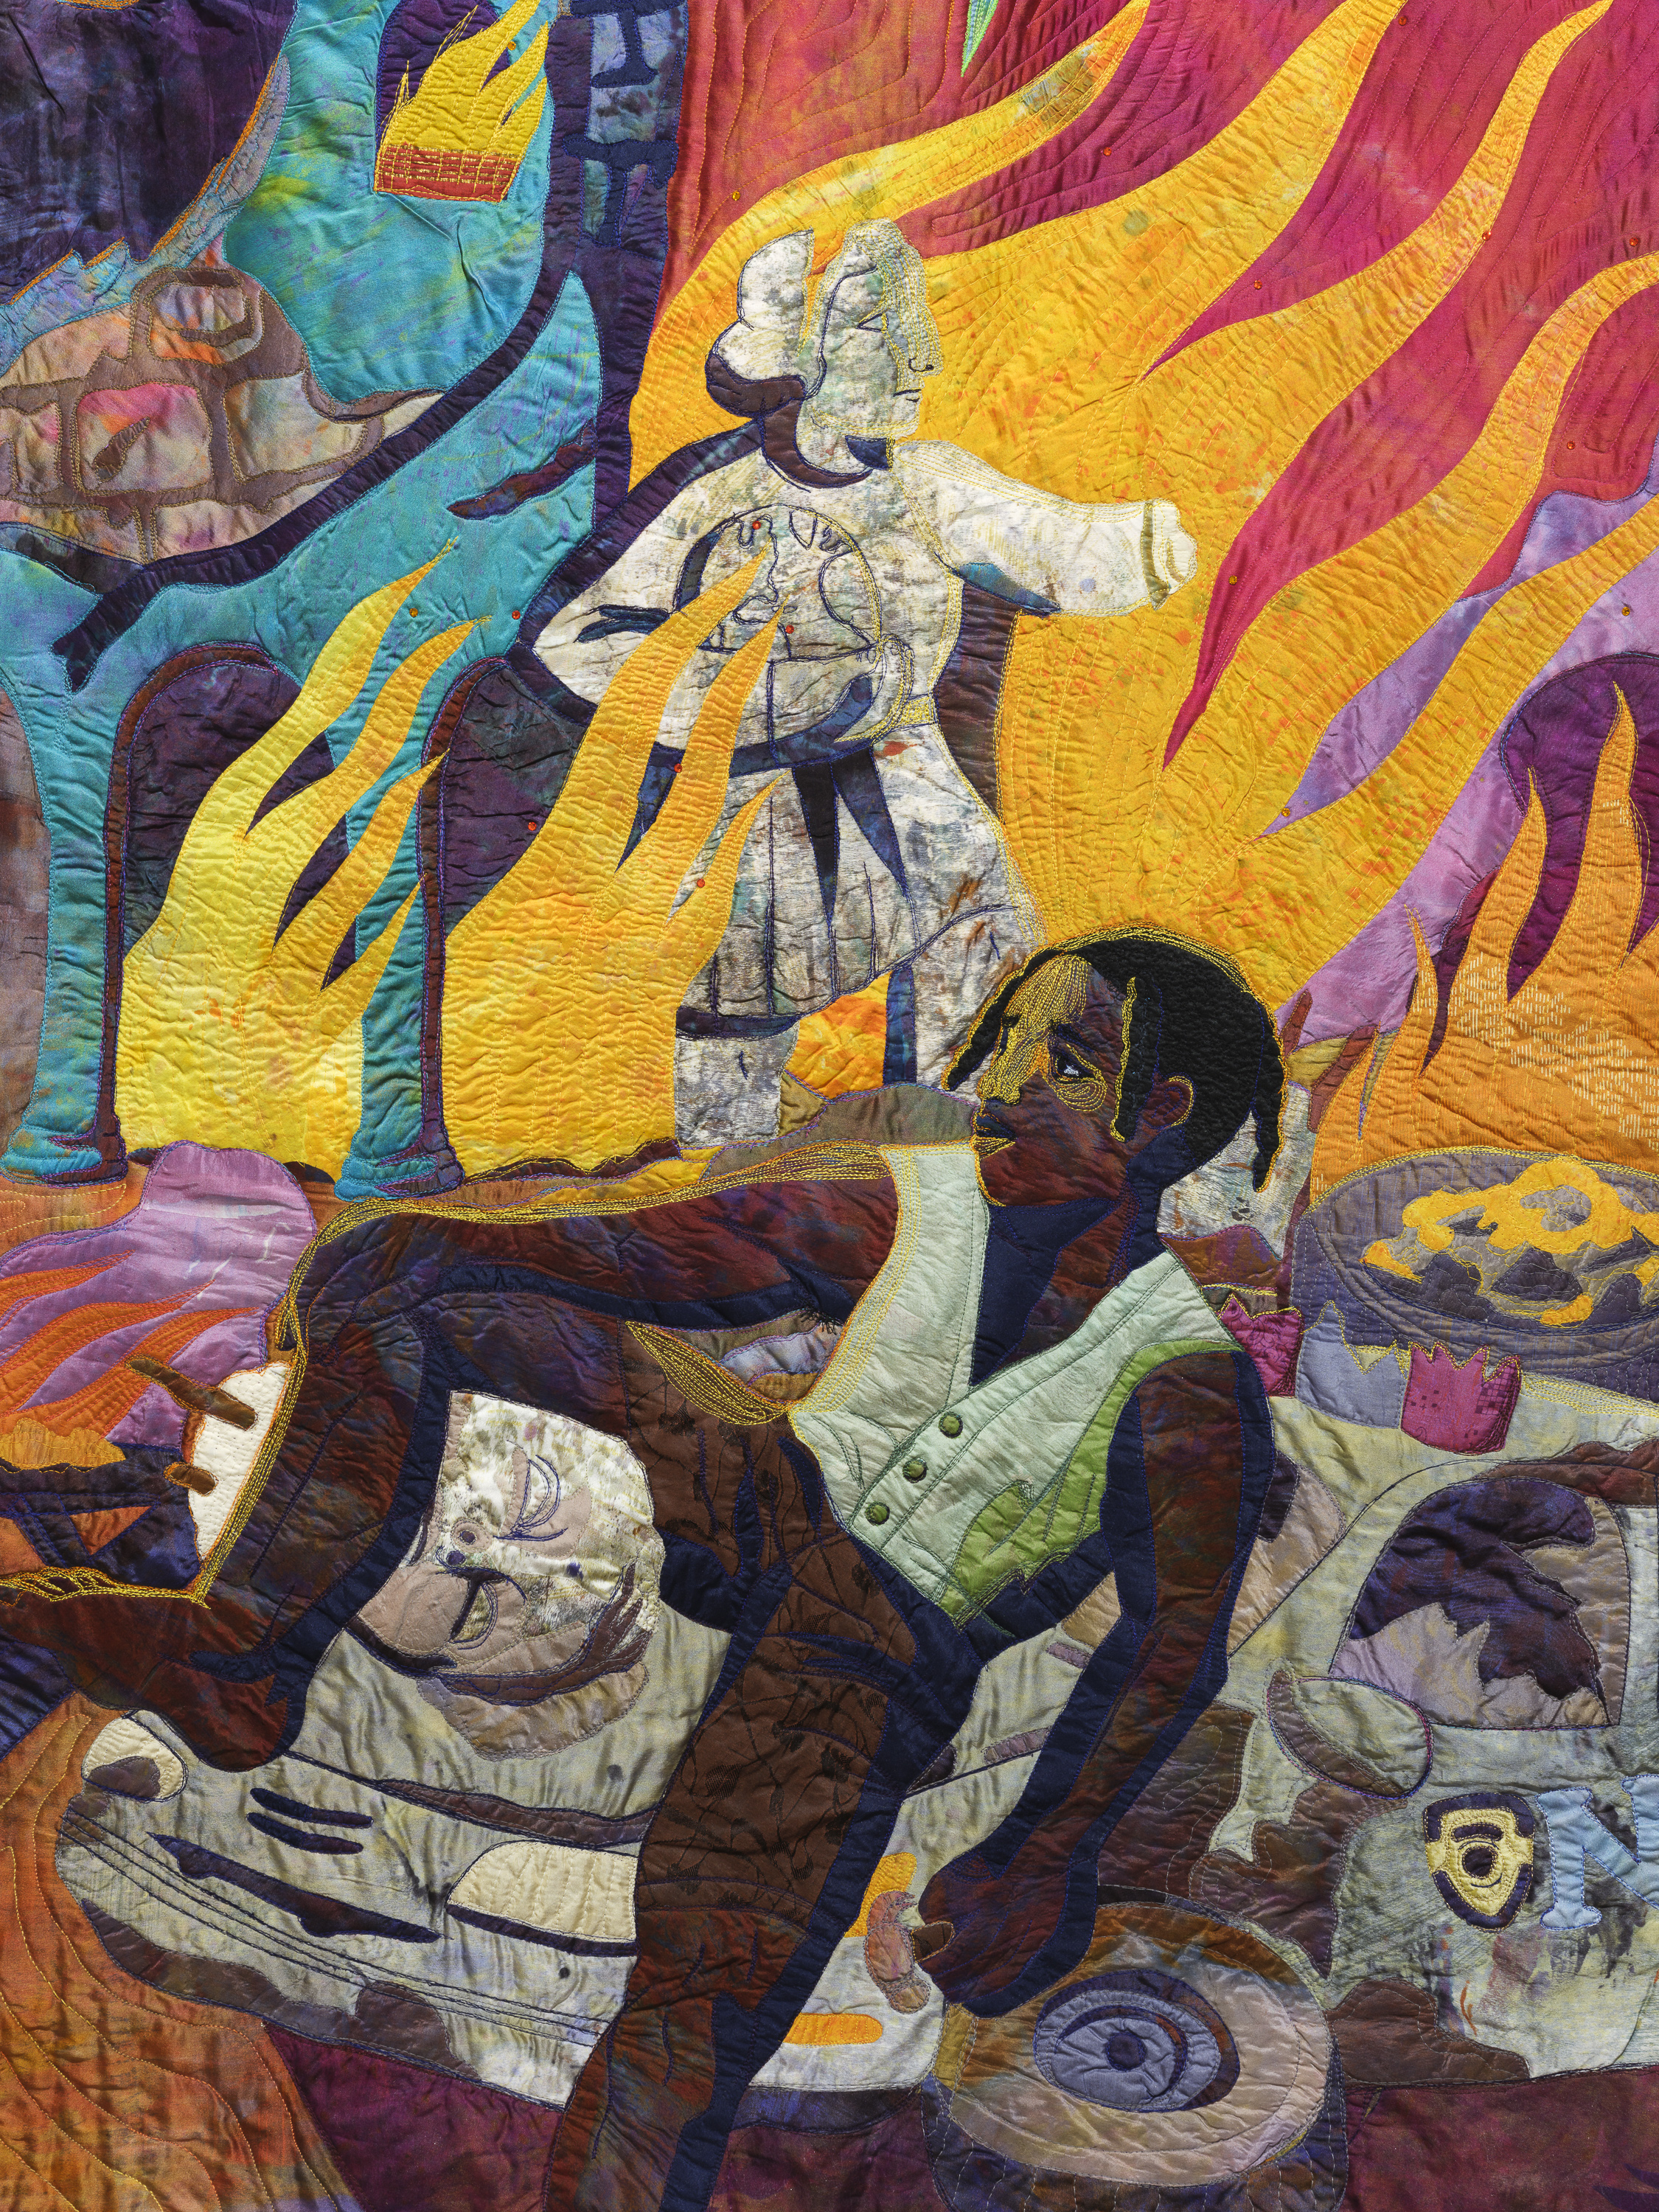 Close up detail of colorful artwork depicting an African American sitting on the hood of a car and surrounded by fire.